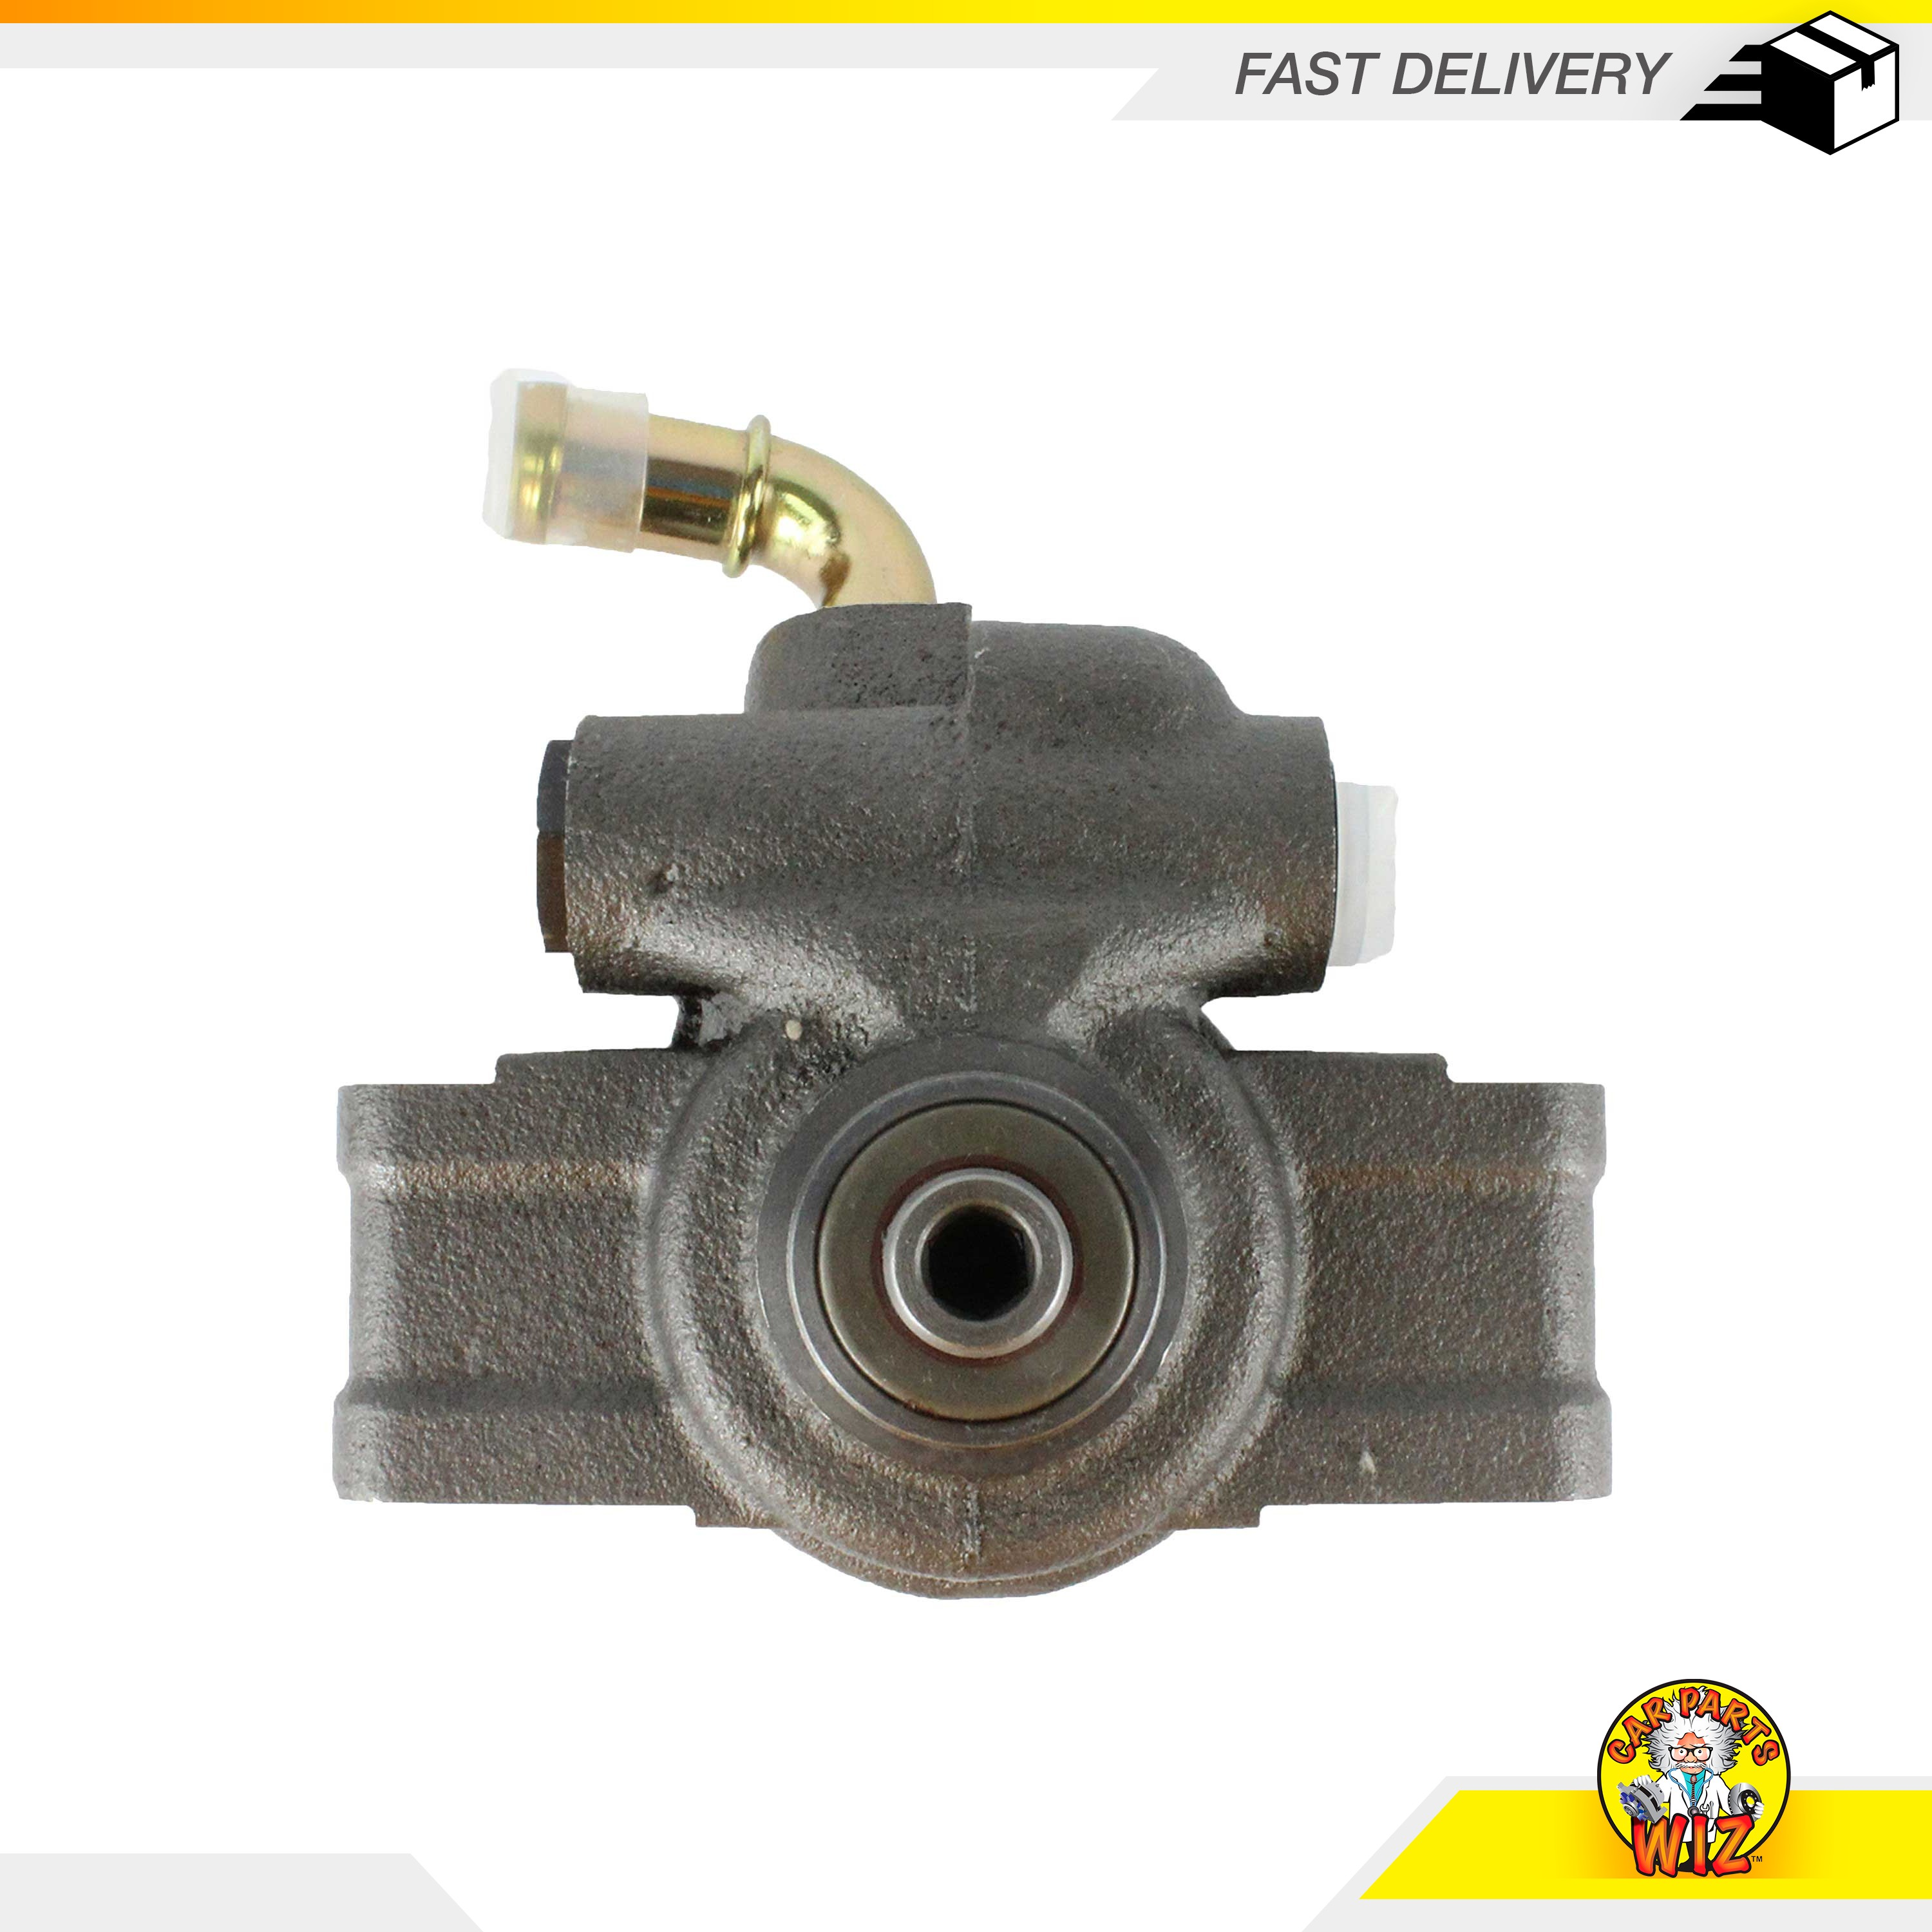 New Power Steering Pump Fits 06-10 Ford Mercury 4.6L SOHC